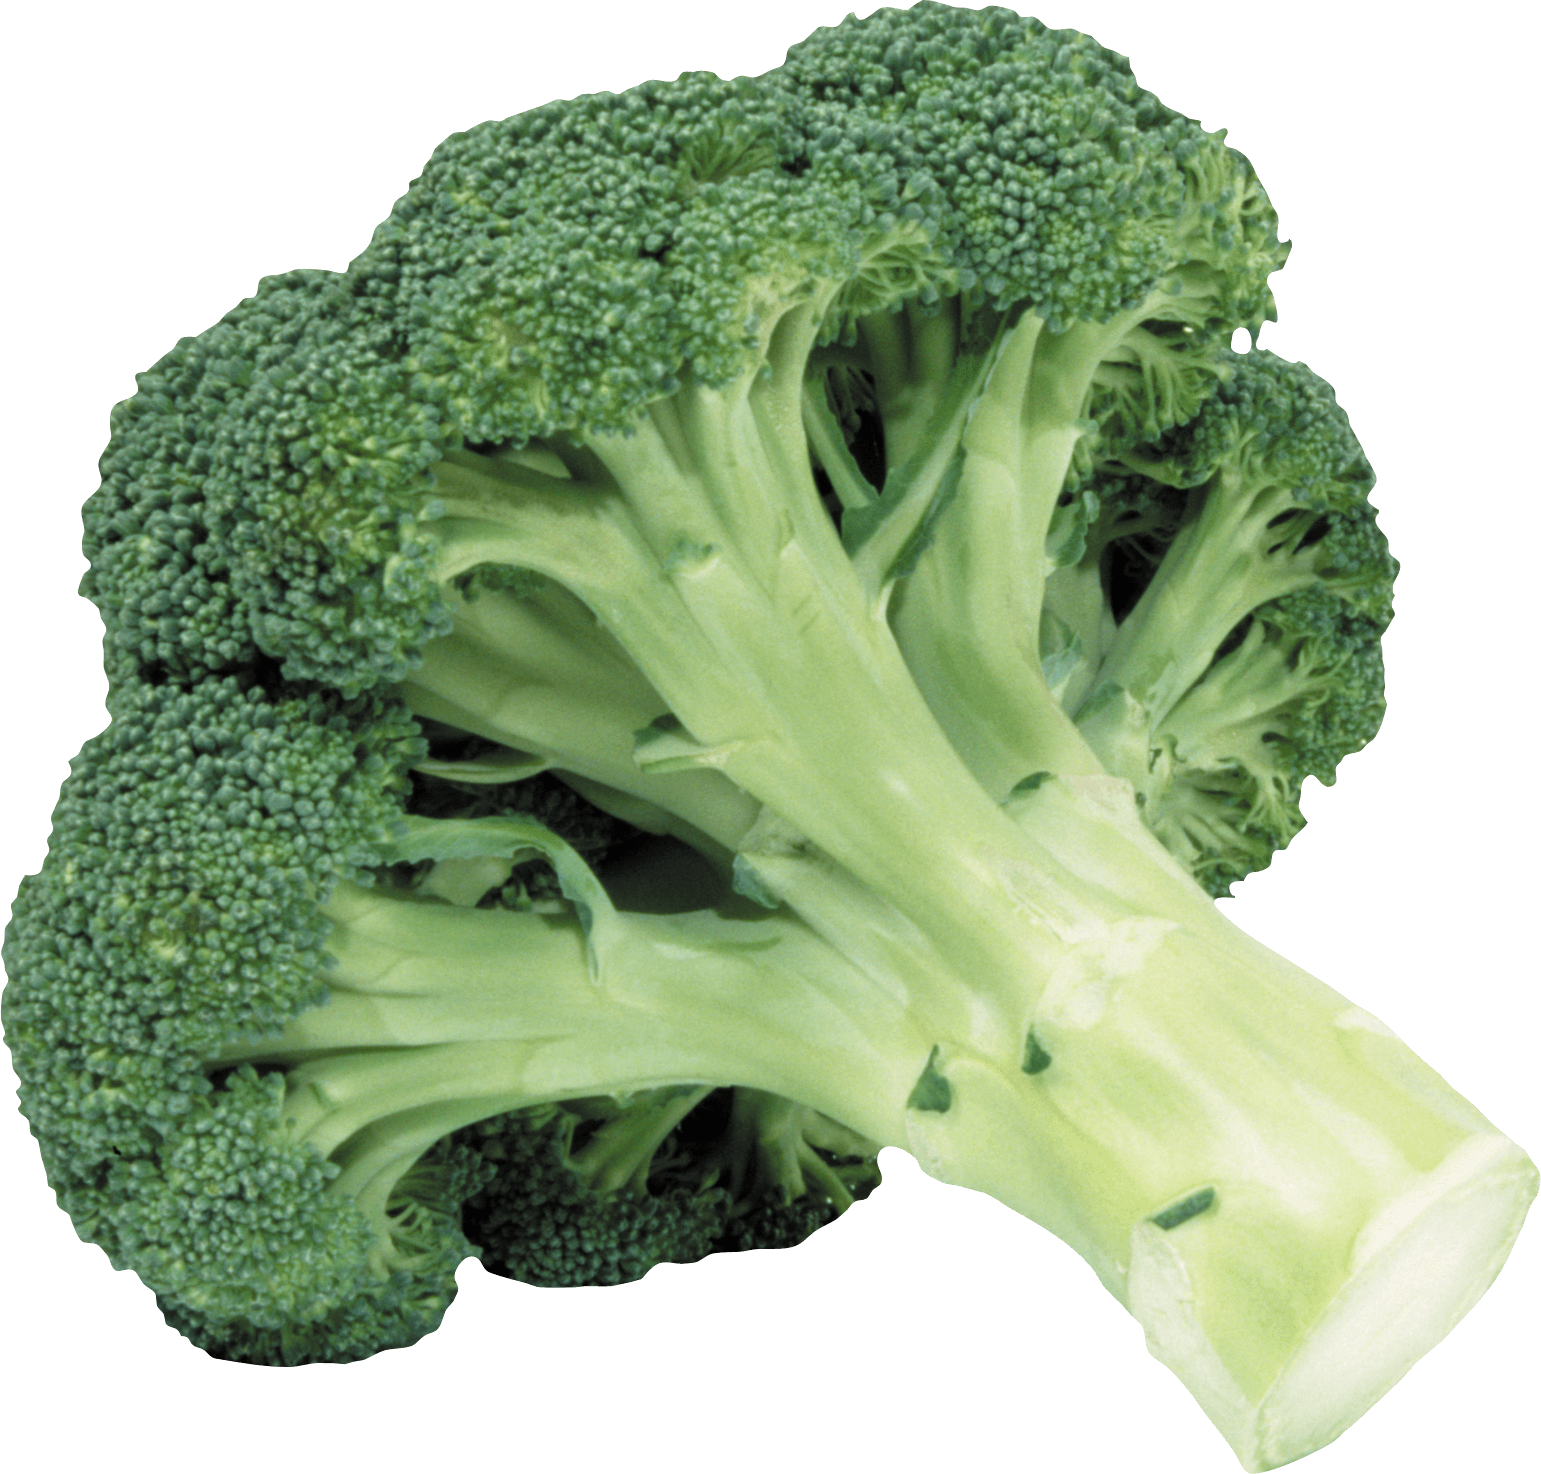 Broccoli Png Image PNG Image - Broccoli HD PNG